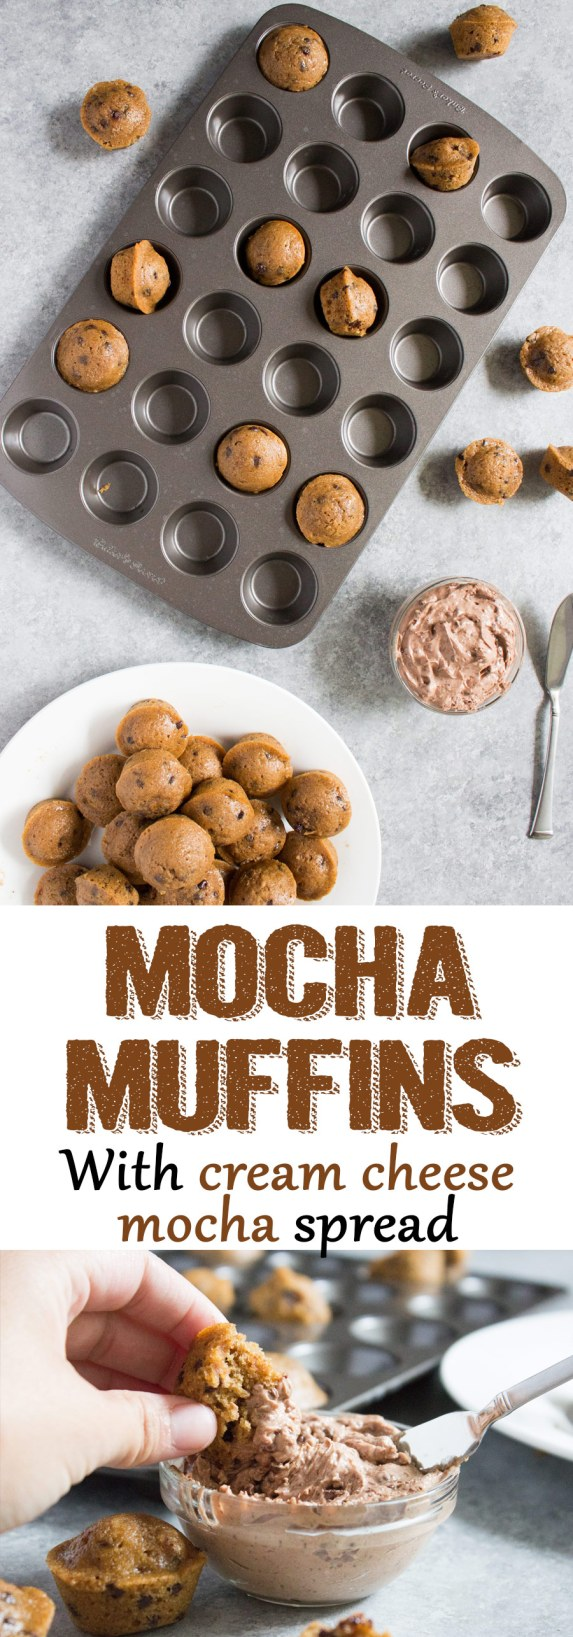 mini mocha muffins, mini muffins, chocolate muffins, blueberry muffins, coffee, coffee muffins, breakfast, dessert, easy, recipe, cream cheese, mocha spread, cream cheese spread